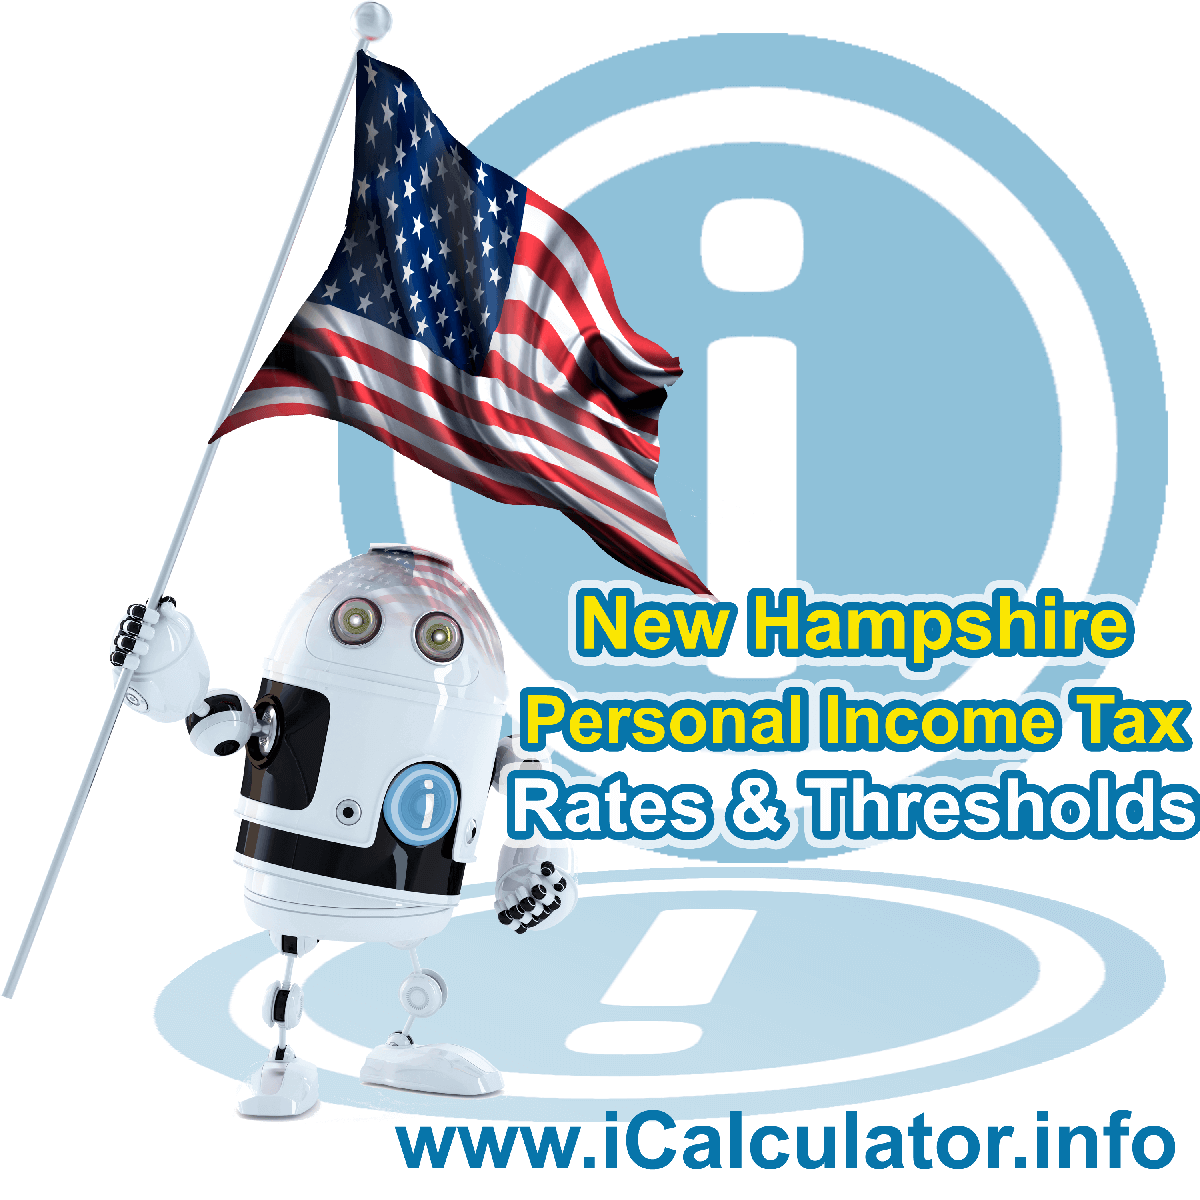 New Hampshire State Tax Tables 2016. This image displays details of the New Hampshire State Tax Tables for the 2016 tax return year which is provided in support of the 2016 US Tax Calculator